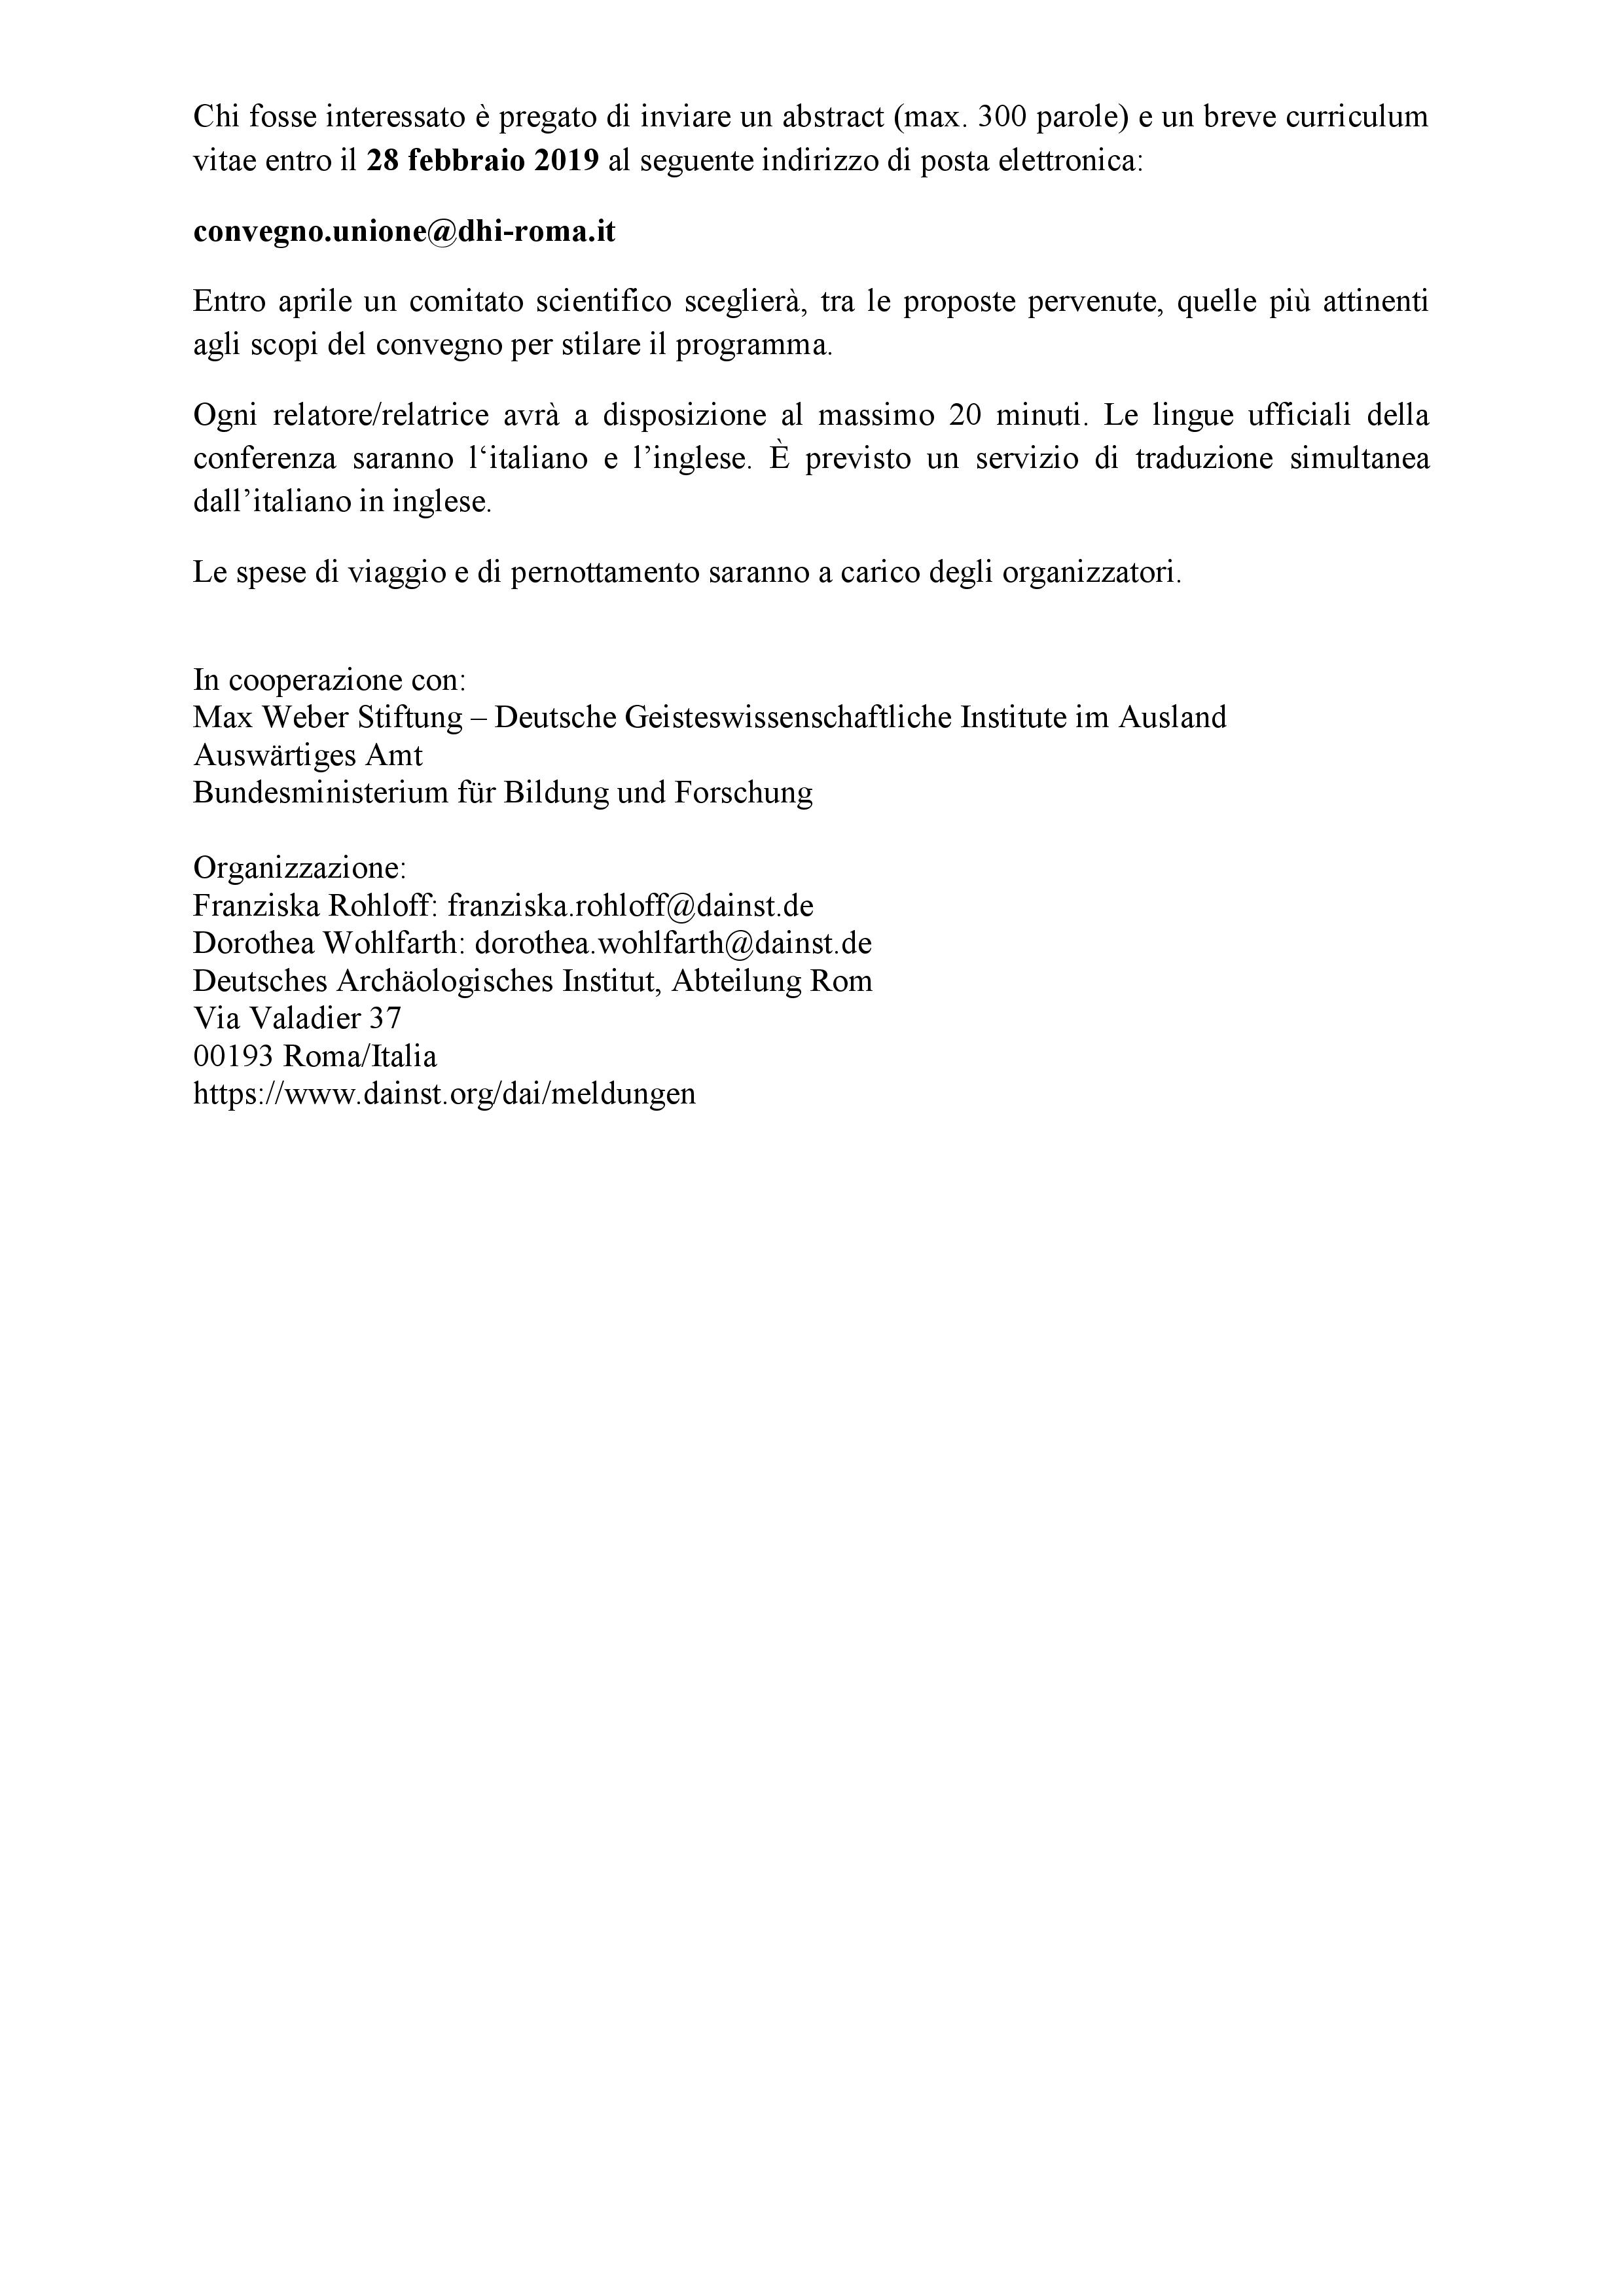 Call_for_Papers_Model_Rome_Italienisch_letzte_Version-page-002